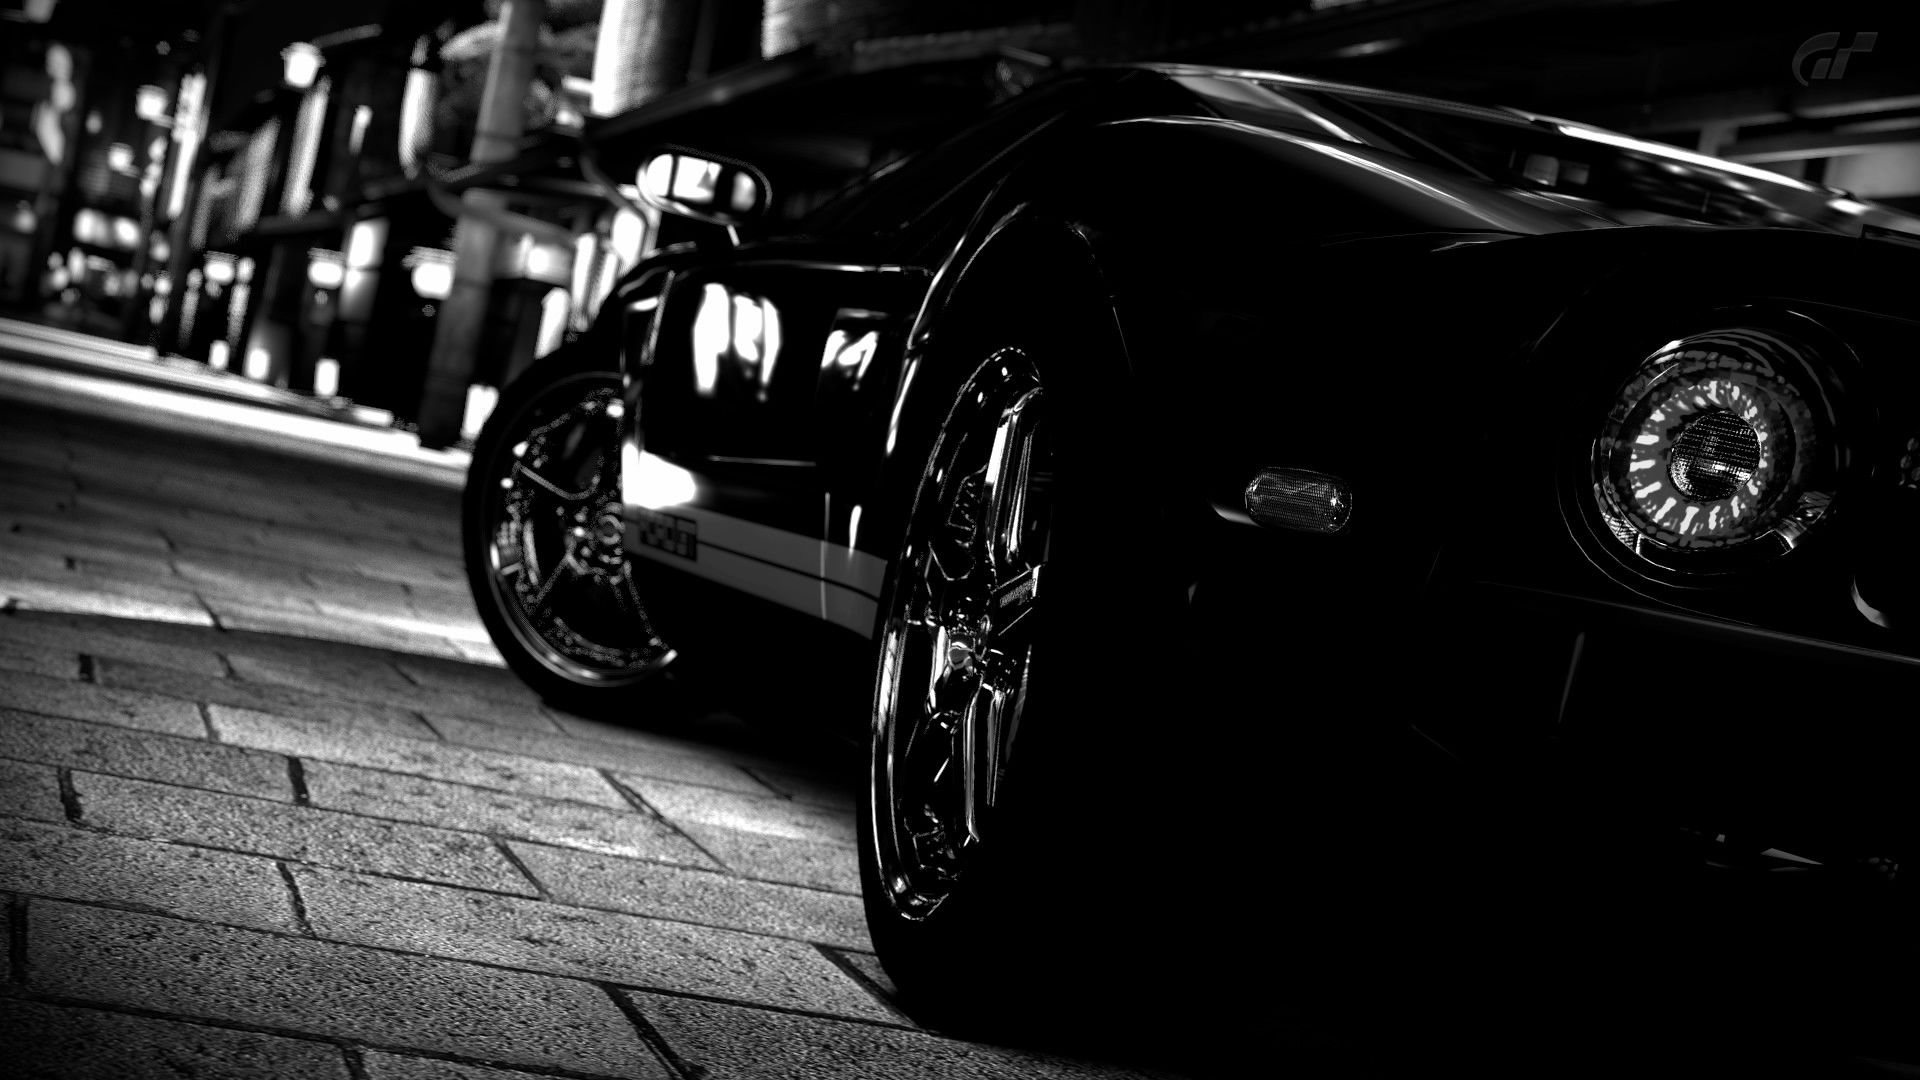 HD-1080p-Black-And-White-Car-Tuffboys-com-wallpaper-wp34012117